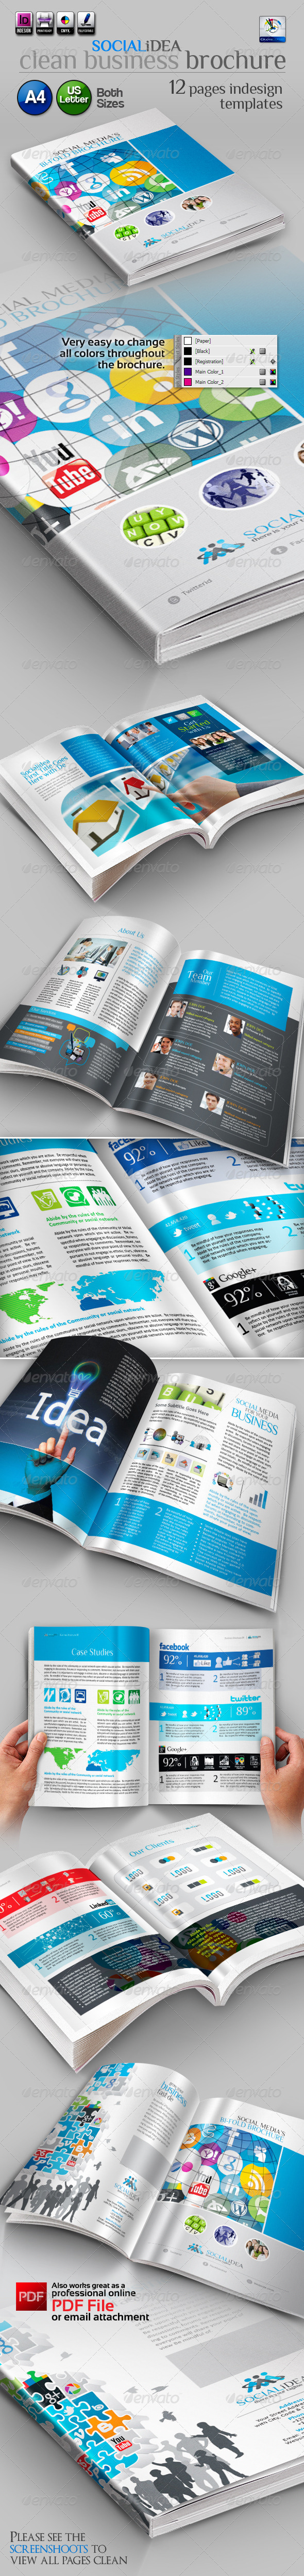 GraphicRiver Socialidea Social Media Clean Bi-fold Brochure 3504107